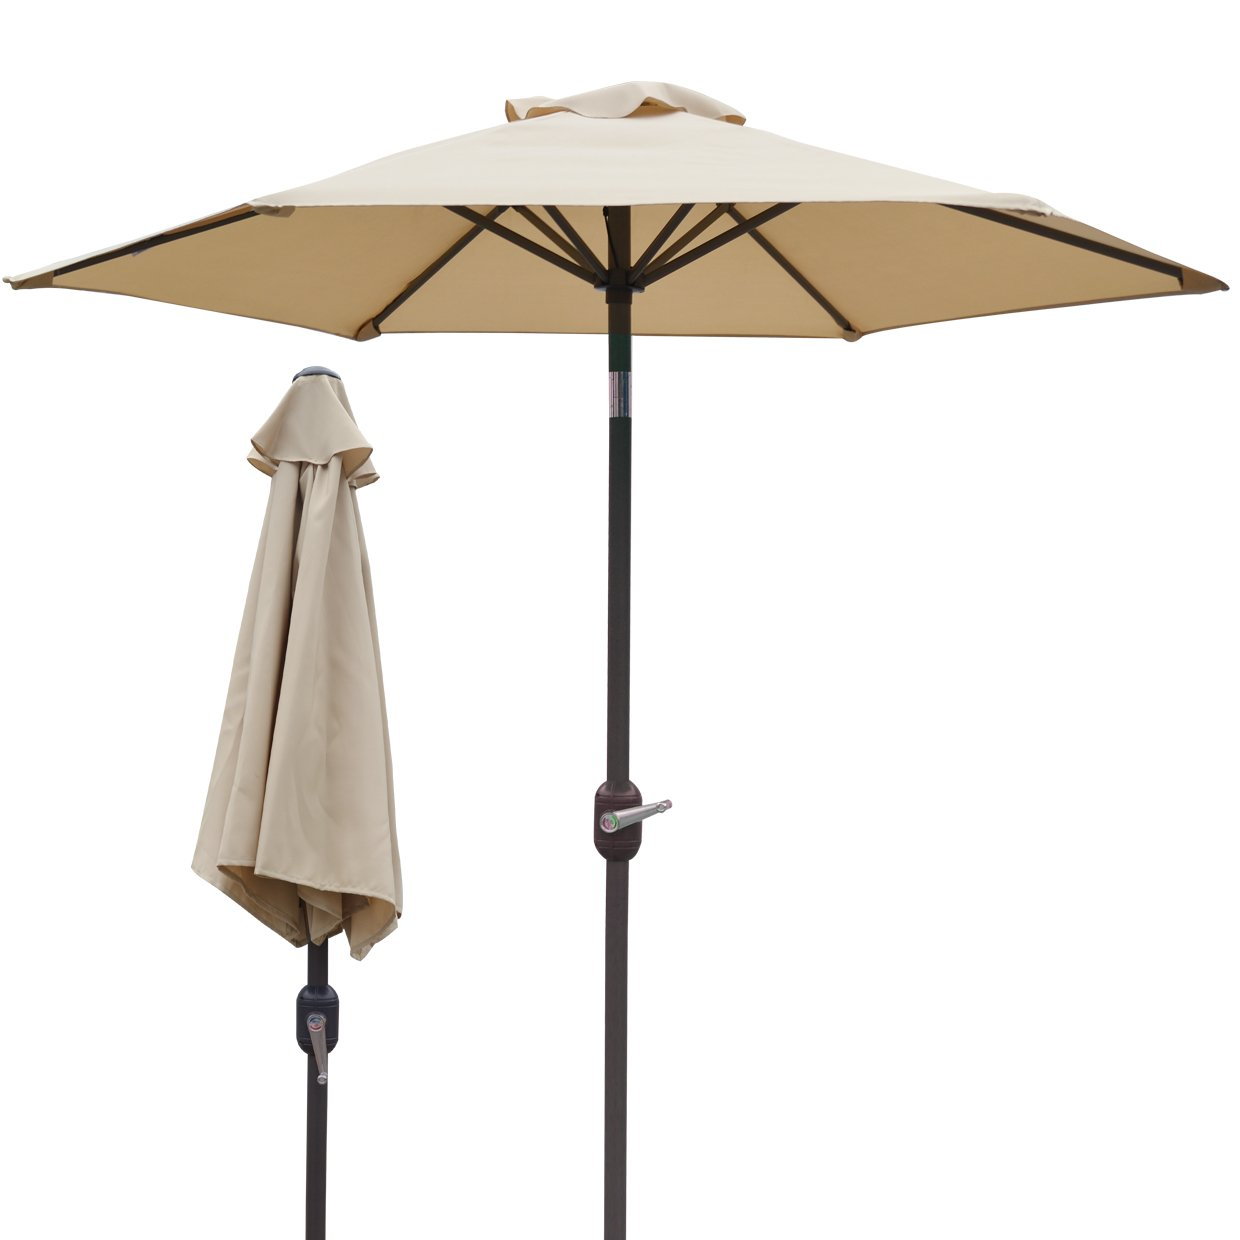 Strong Camel 6.5 2m PARASOL NEW PATIO GARDEN UMBRELLA SUNSHADE MARKET OUTDOOR-BEIGE